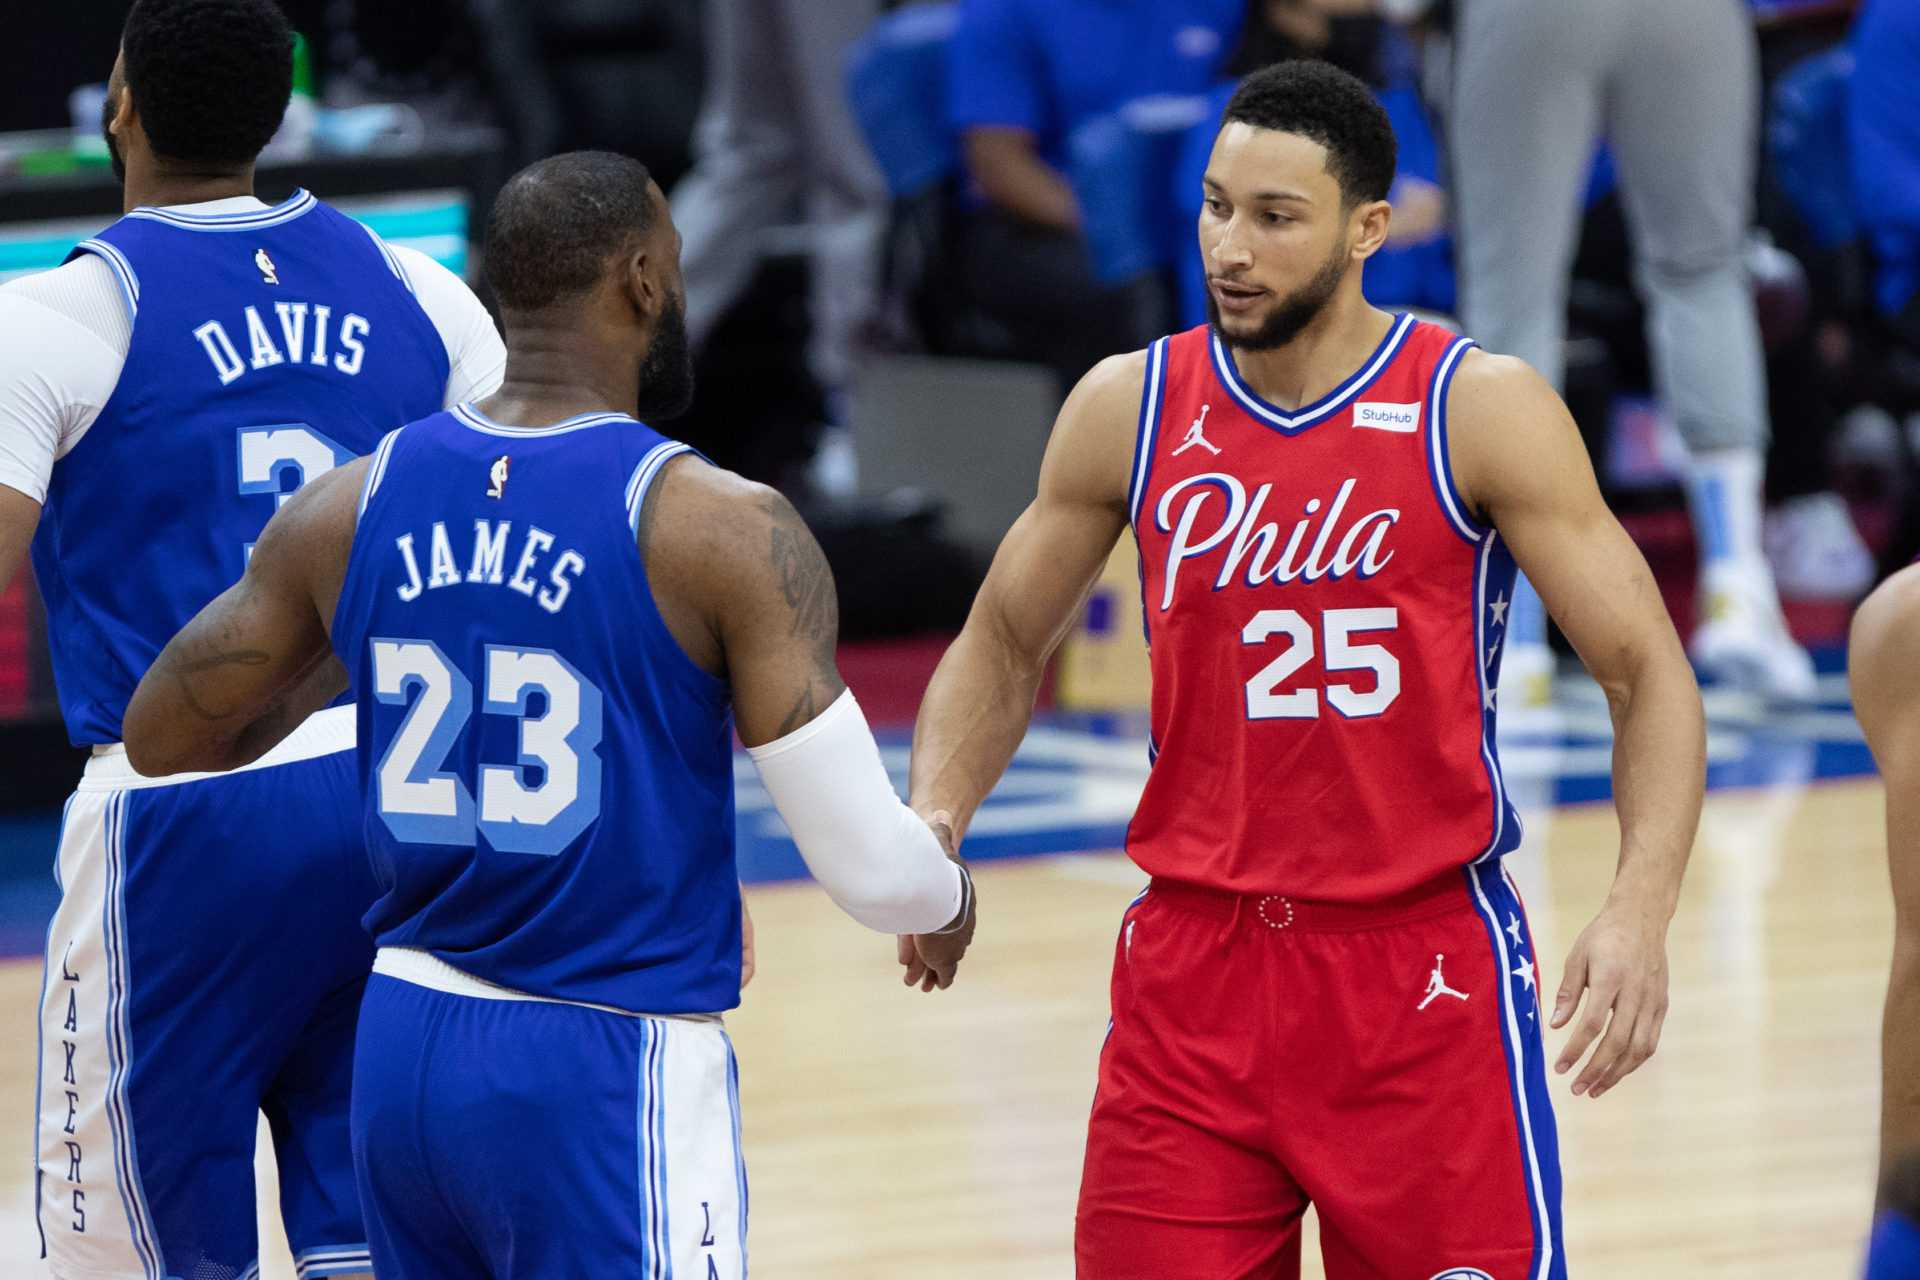 'Let's Get It'-76ers' Ben Simmons reagerar på att bli plockad av LeBron James 2021 NBA All-Star Game